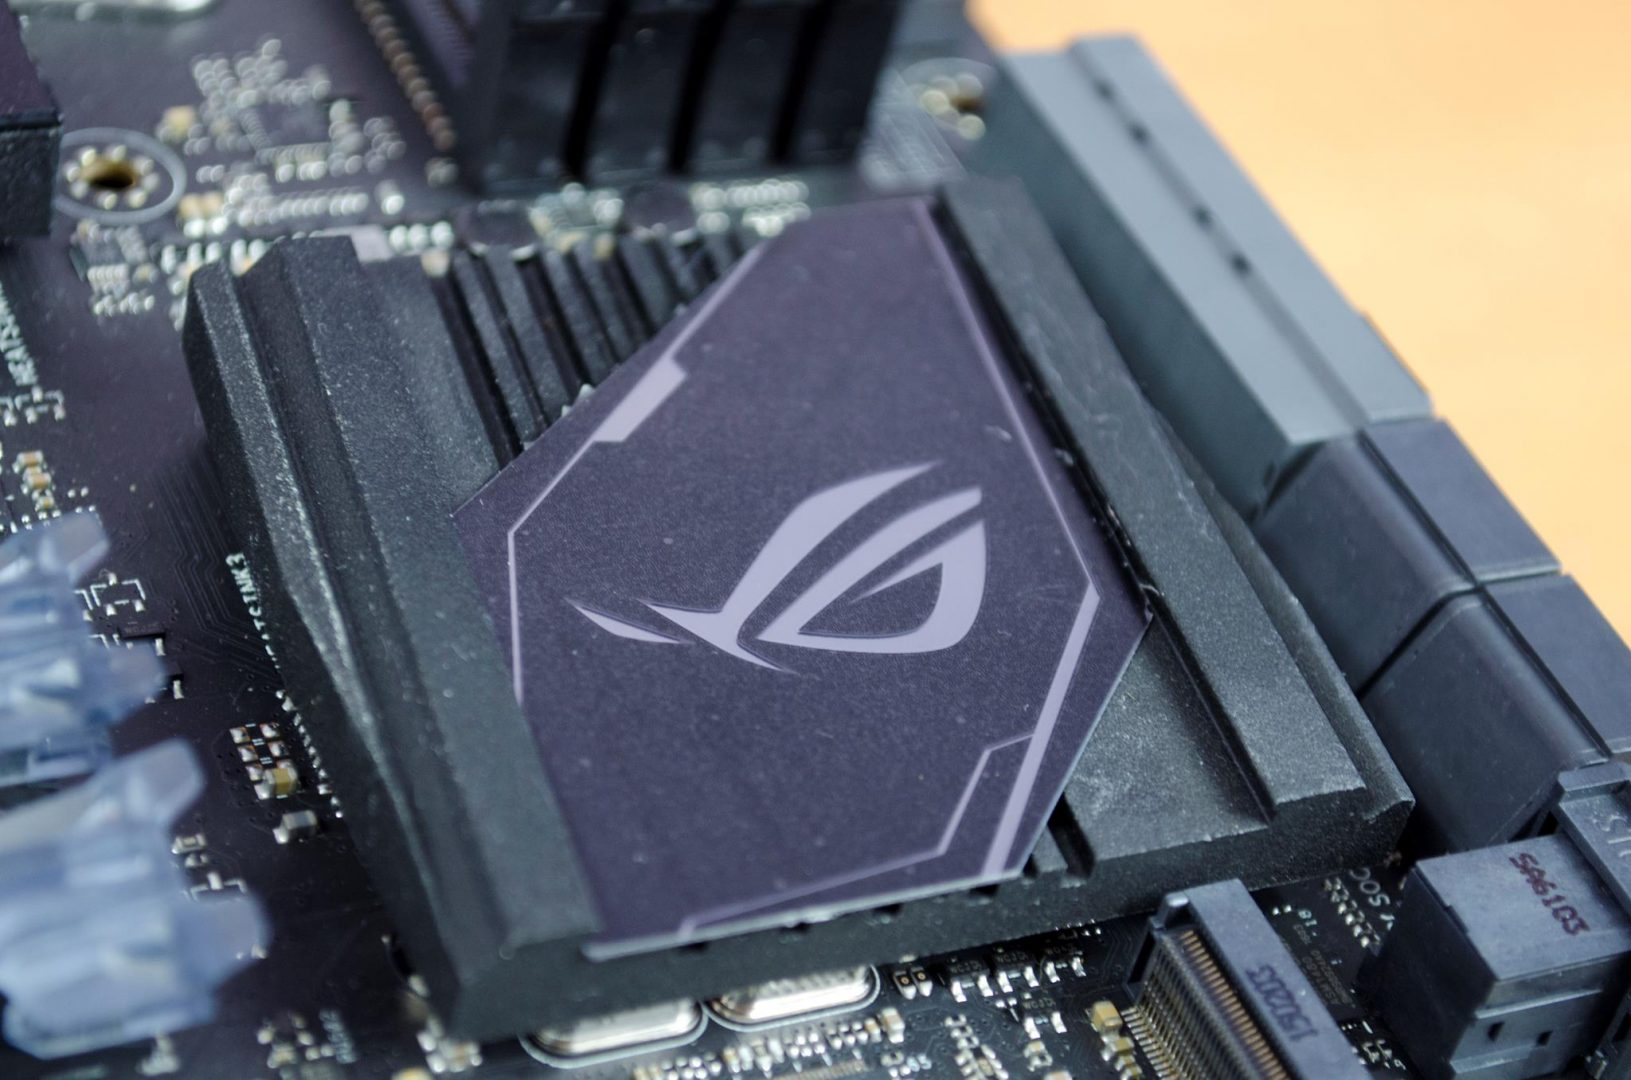 asus rog strix x99 gaming motherboard review_11